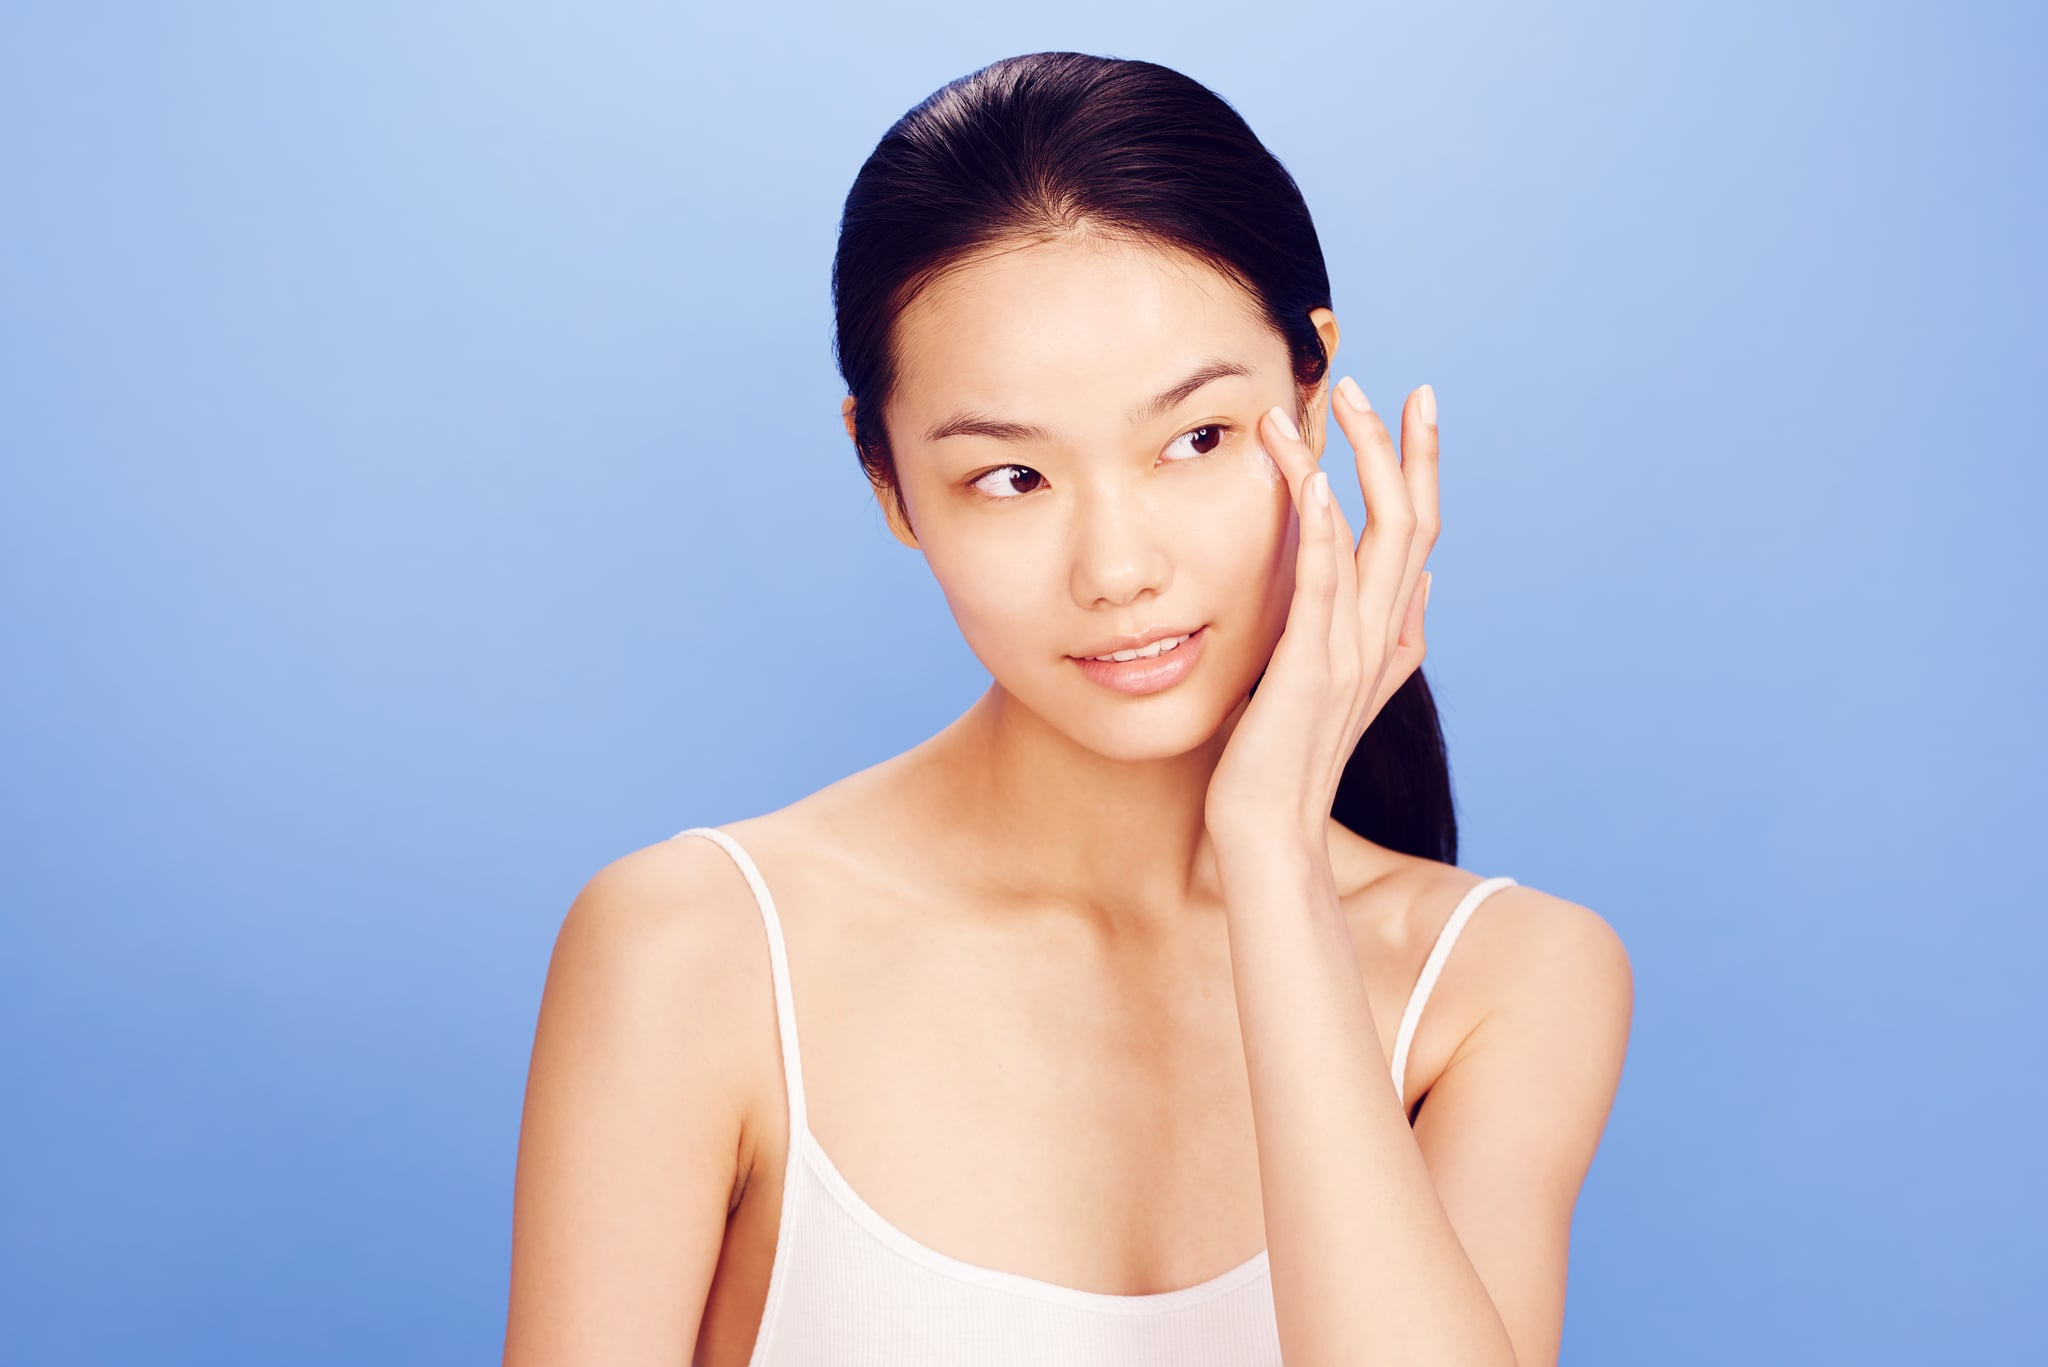 Pore Clogging Ingredients to Avoid If You Have Acne